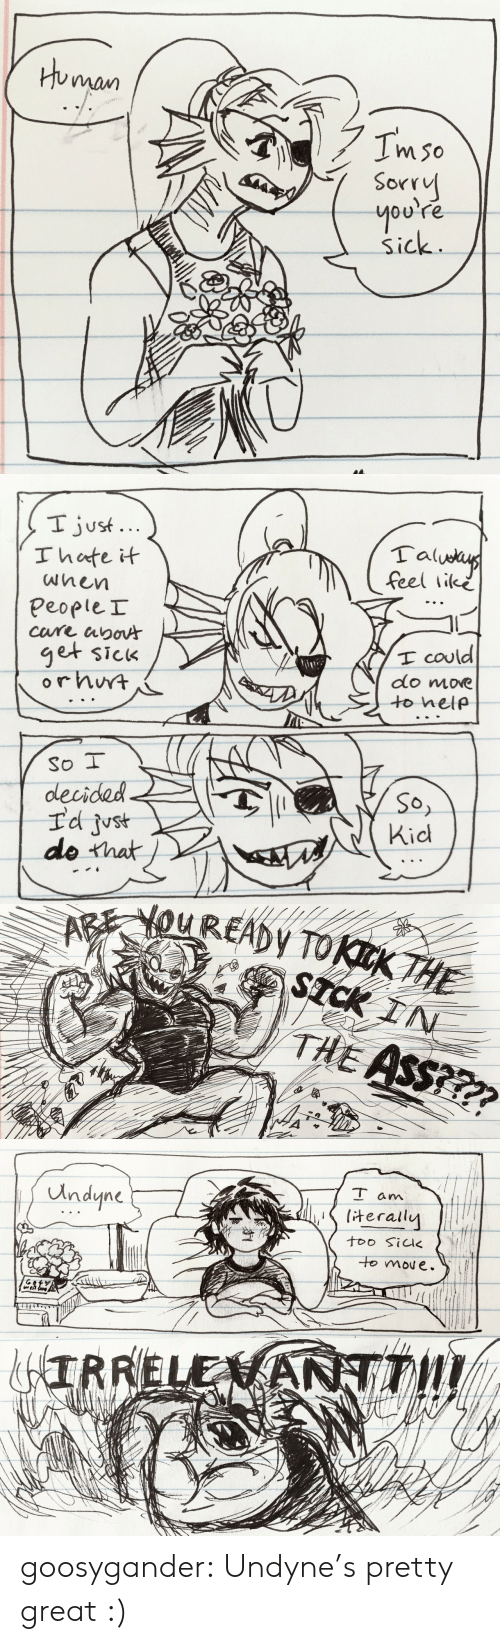 Youre Sick: Human  Imso  Sorry  you're  Sick   I just...  Ihate it  Talueus  feel like  wnen  PeopleI  cure apoA  get sick  orhwt  I could  do move  to help  So I  decided  Id just  do that  So,  Kid   AREYOUREADY TOKKTHE  STCK IN  THE ASS???   T am  Undyne  terally  too Sik  to moue.   &IRRELENANTT! goosygander:  Undyne's pretty great :)